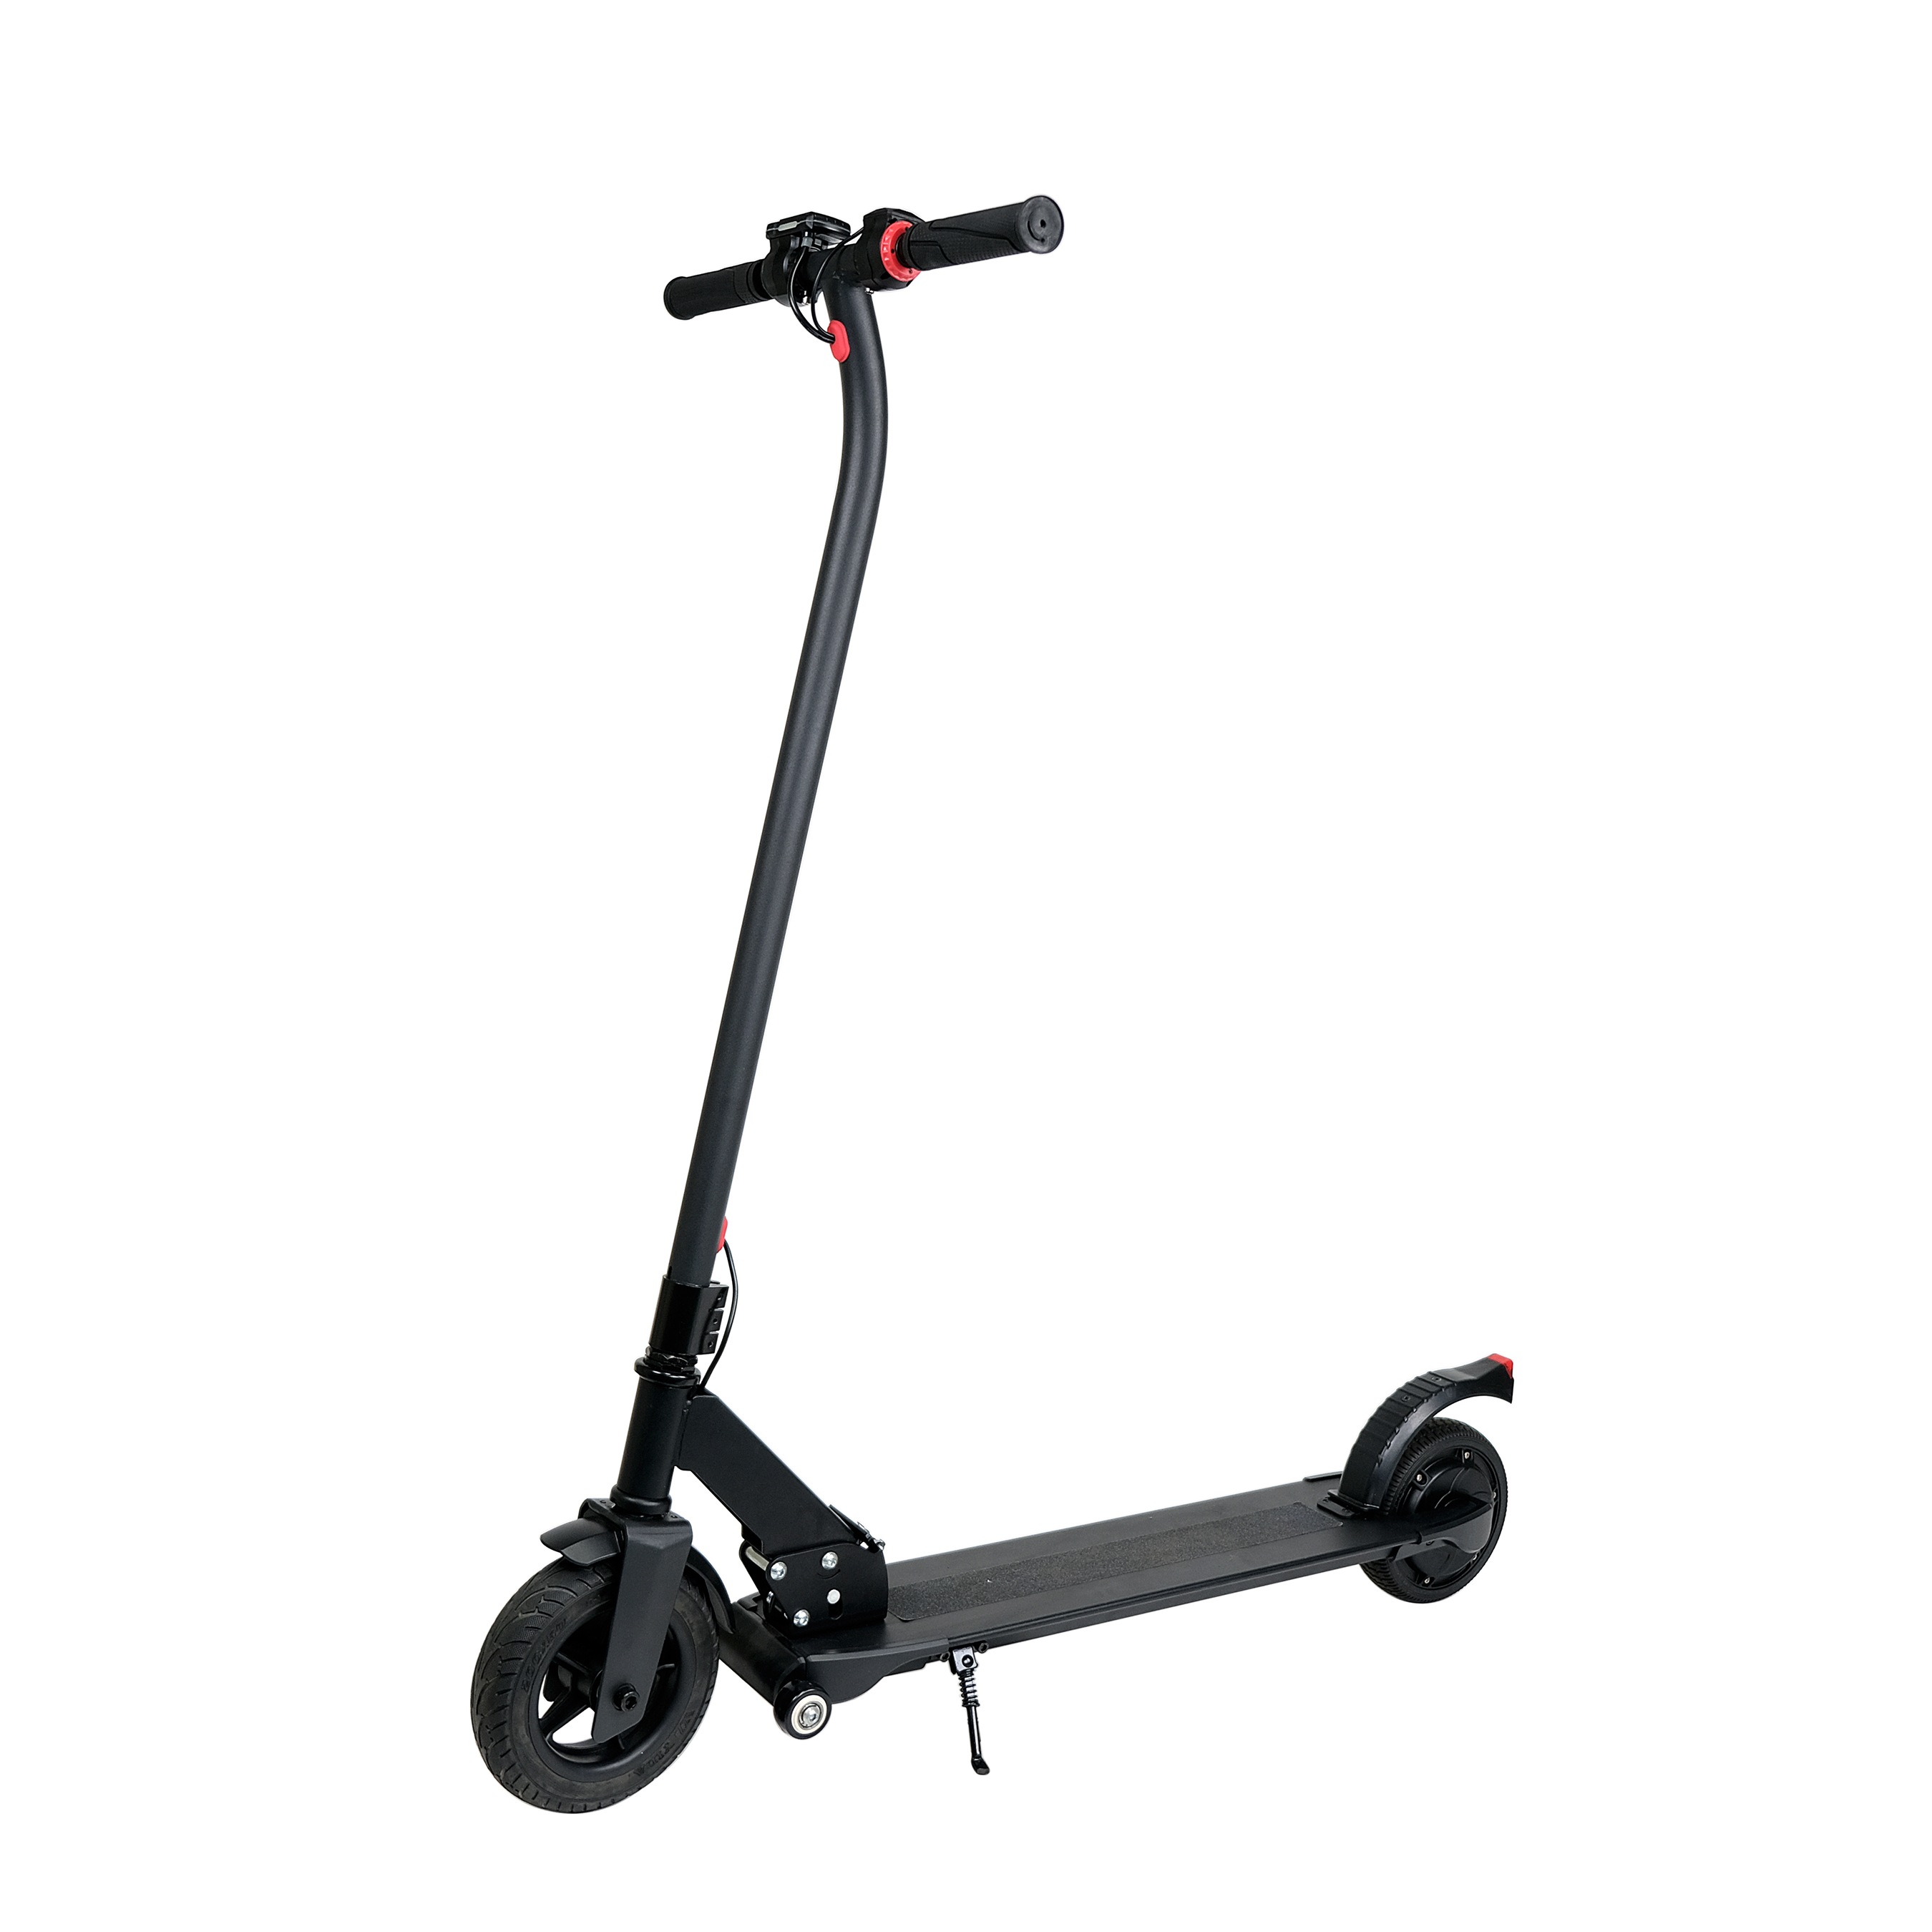 24V 270w about 25KM/h Range Alloy+ABS+PC Foldable Electric Scooter